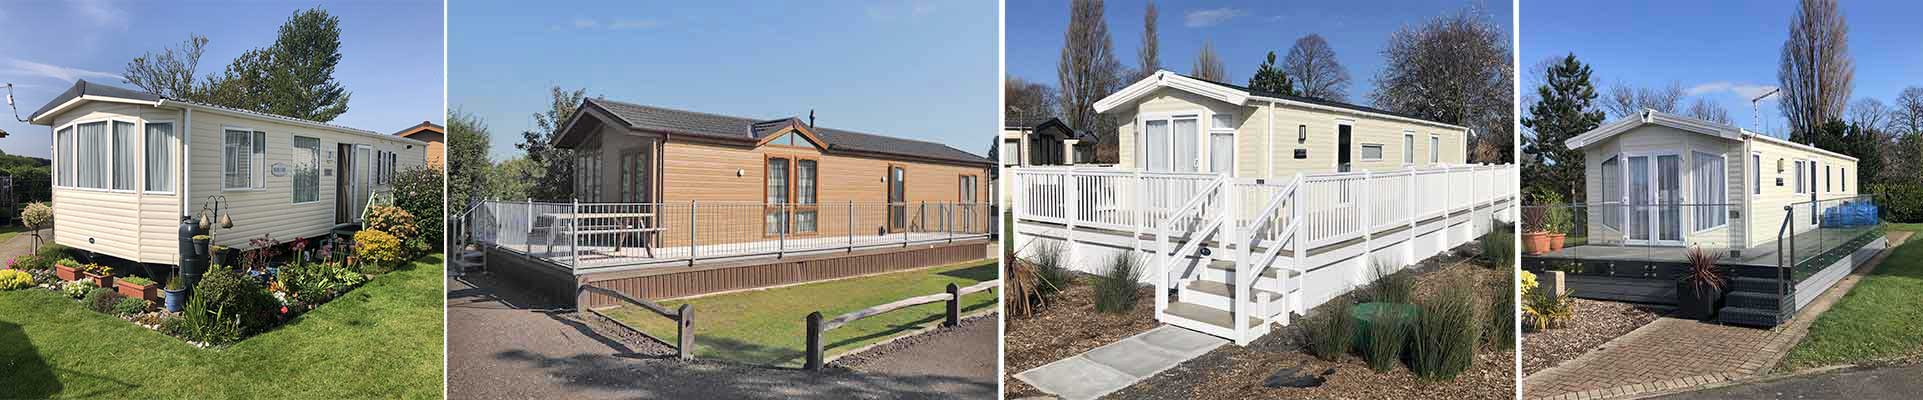 sandwich leisure holiday park own a holiday home in